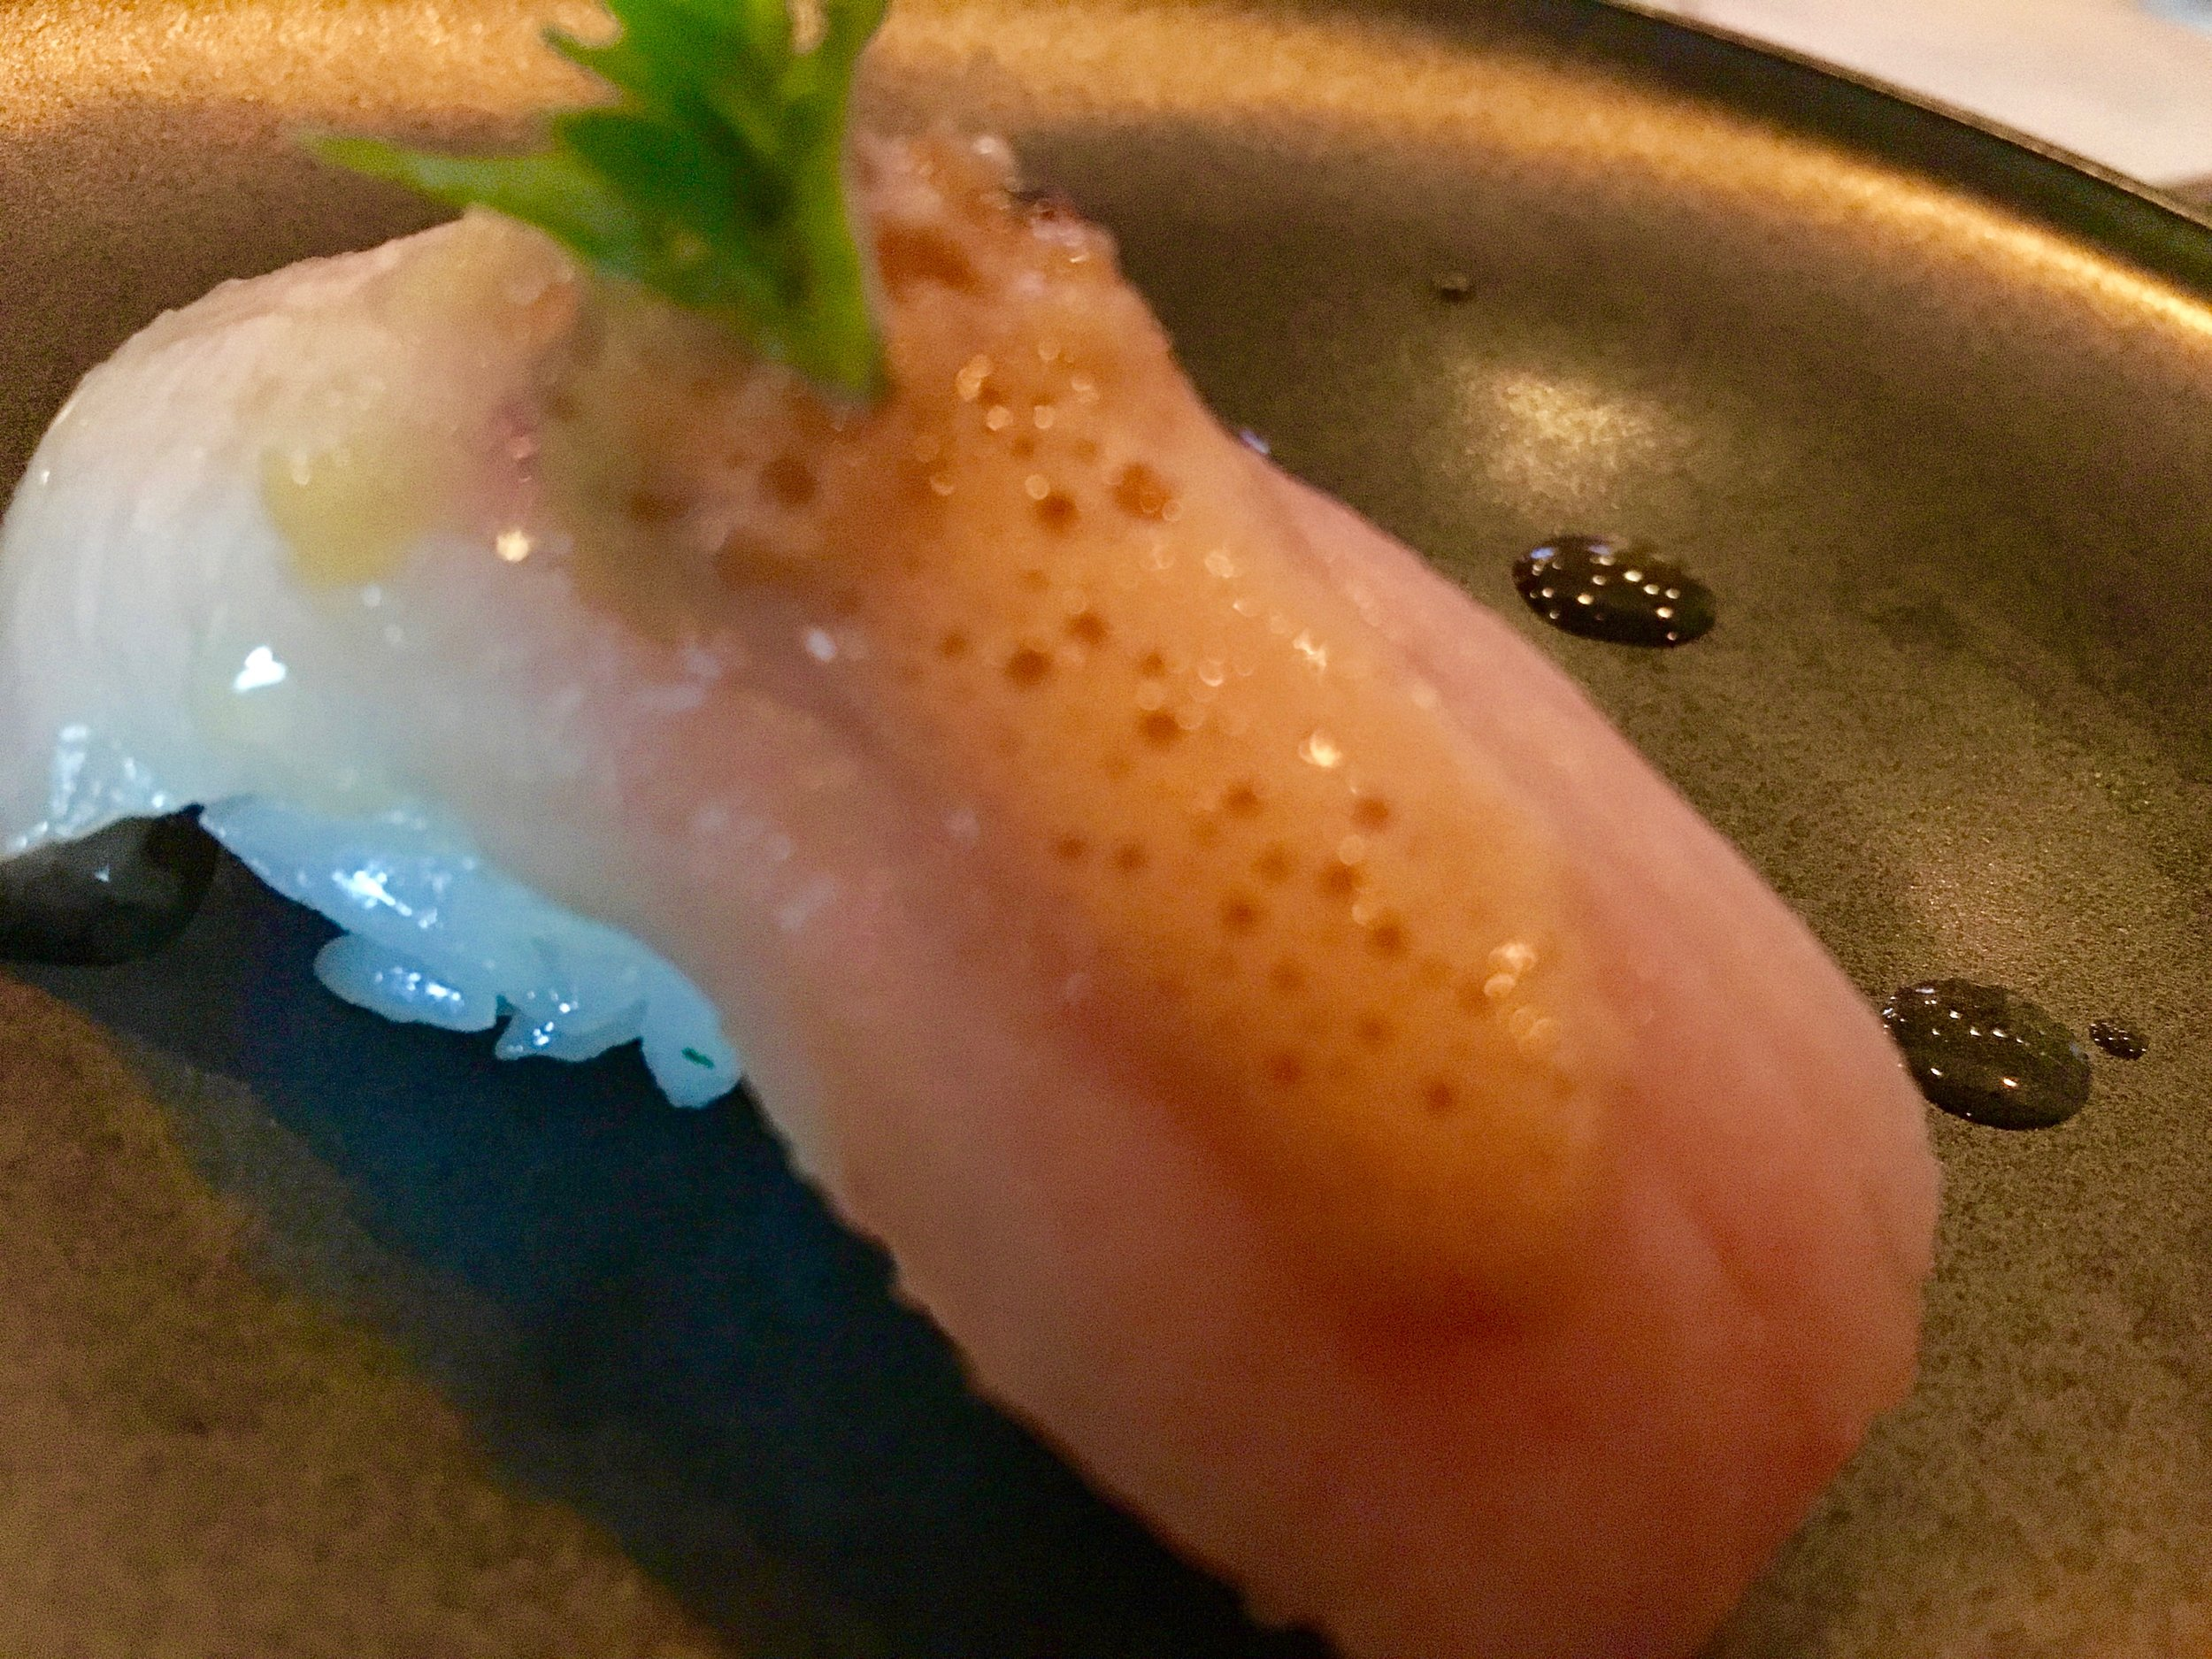 Yellowtail belly nigiri with bourbon barrel-aged soy, lemongrass pesto, uni foam and globe basil at the omakse dinner at Seito Sushi